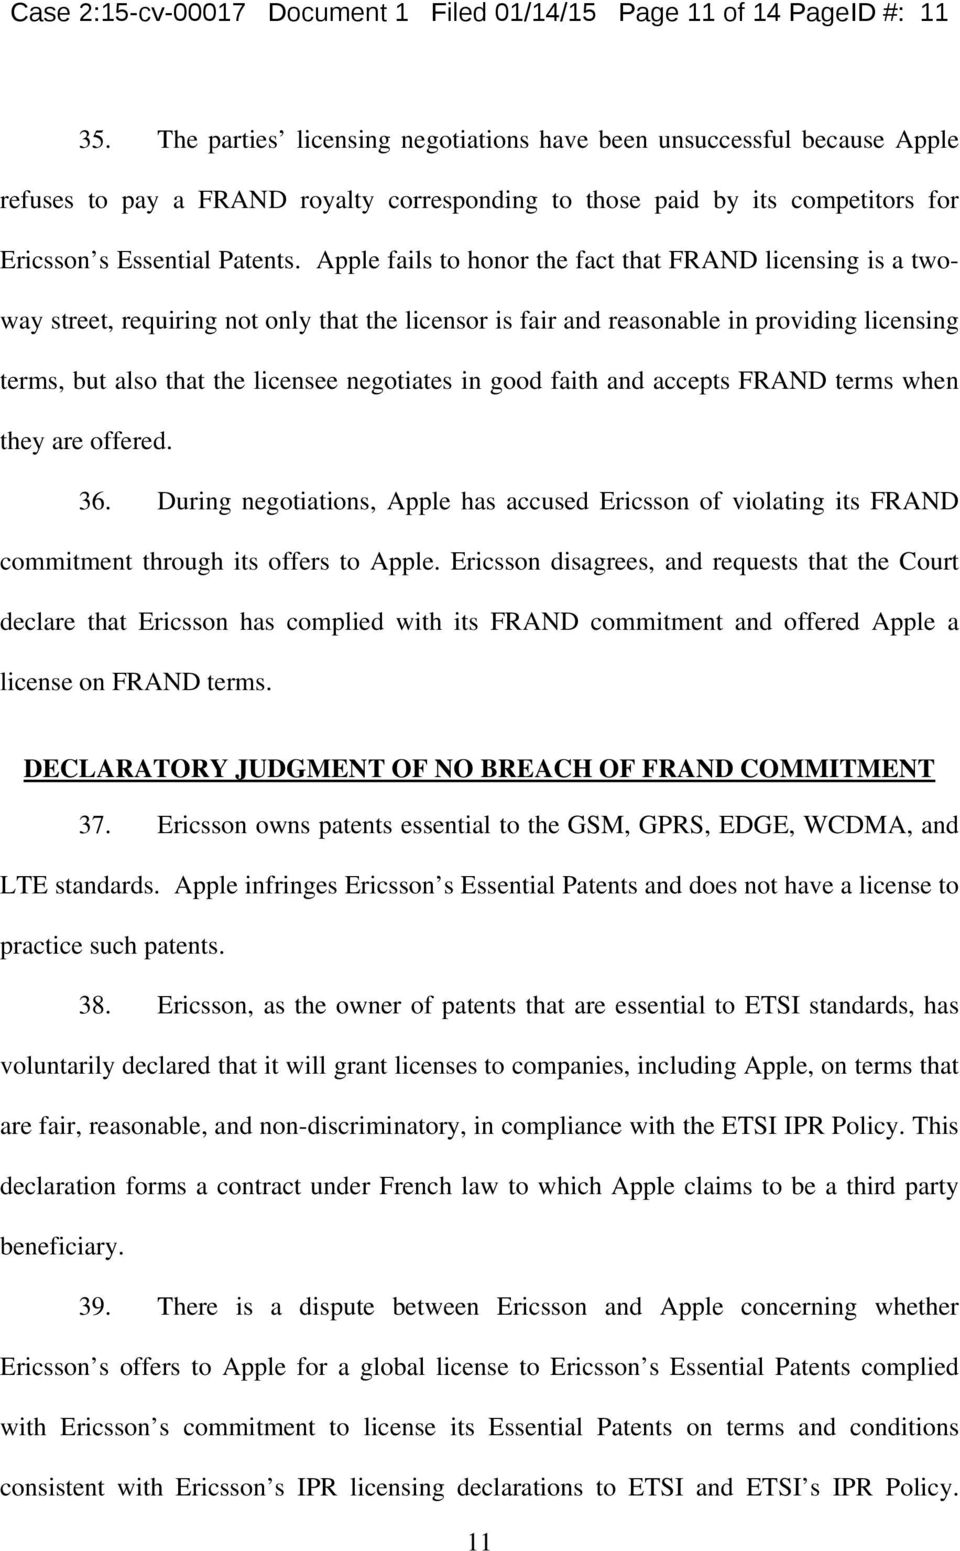 Apple fails to honor the fact that FRAND licensing is a twoway street, requiring not only that the licensor is fair and reasonable in providing licensing terms, but also that the licensee negotiates